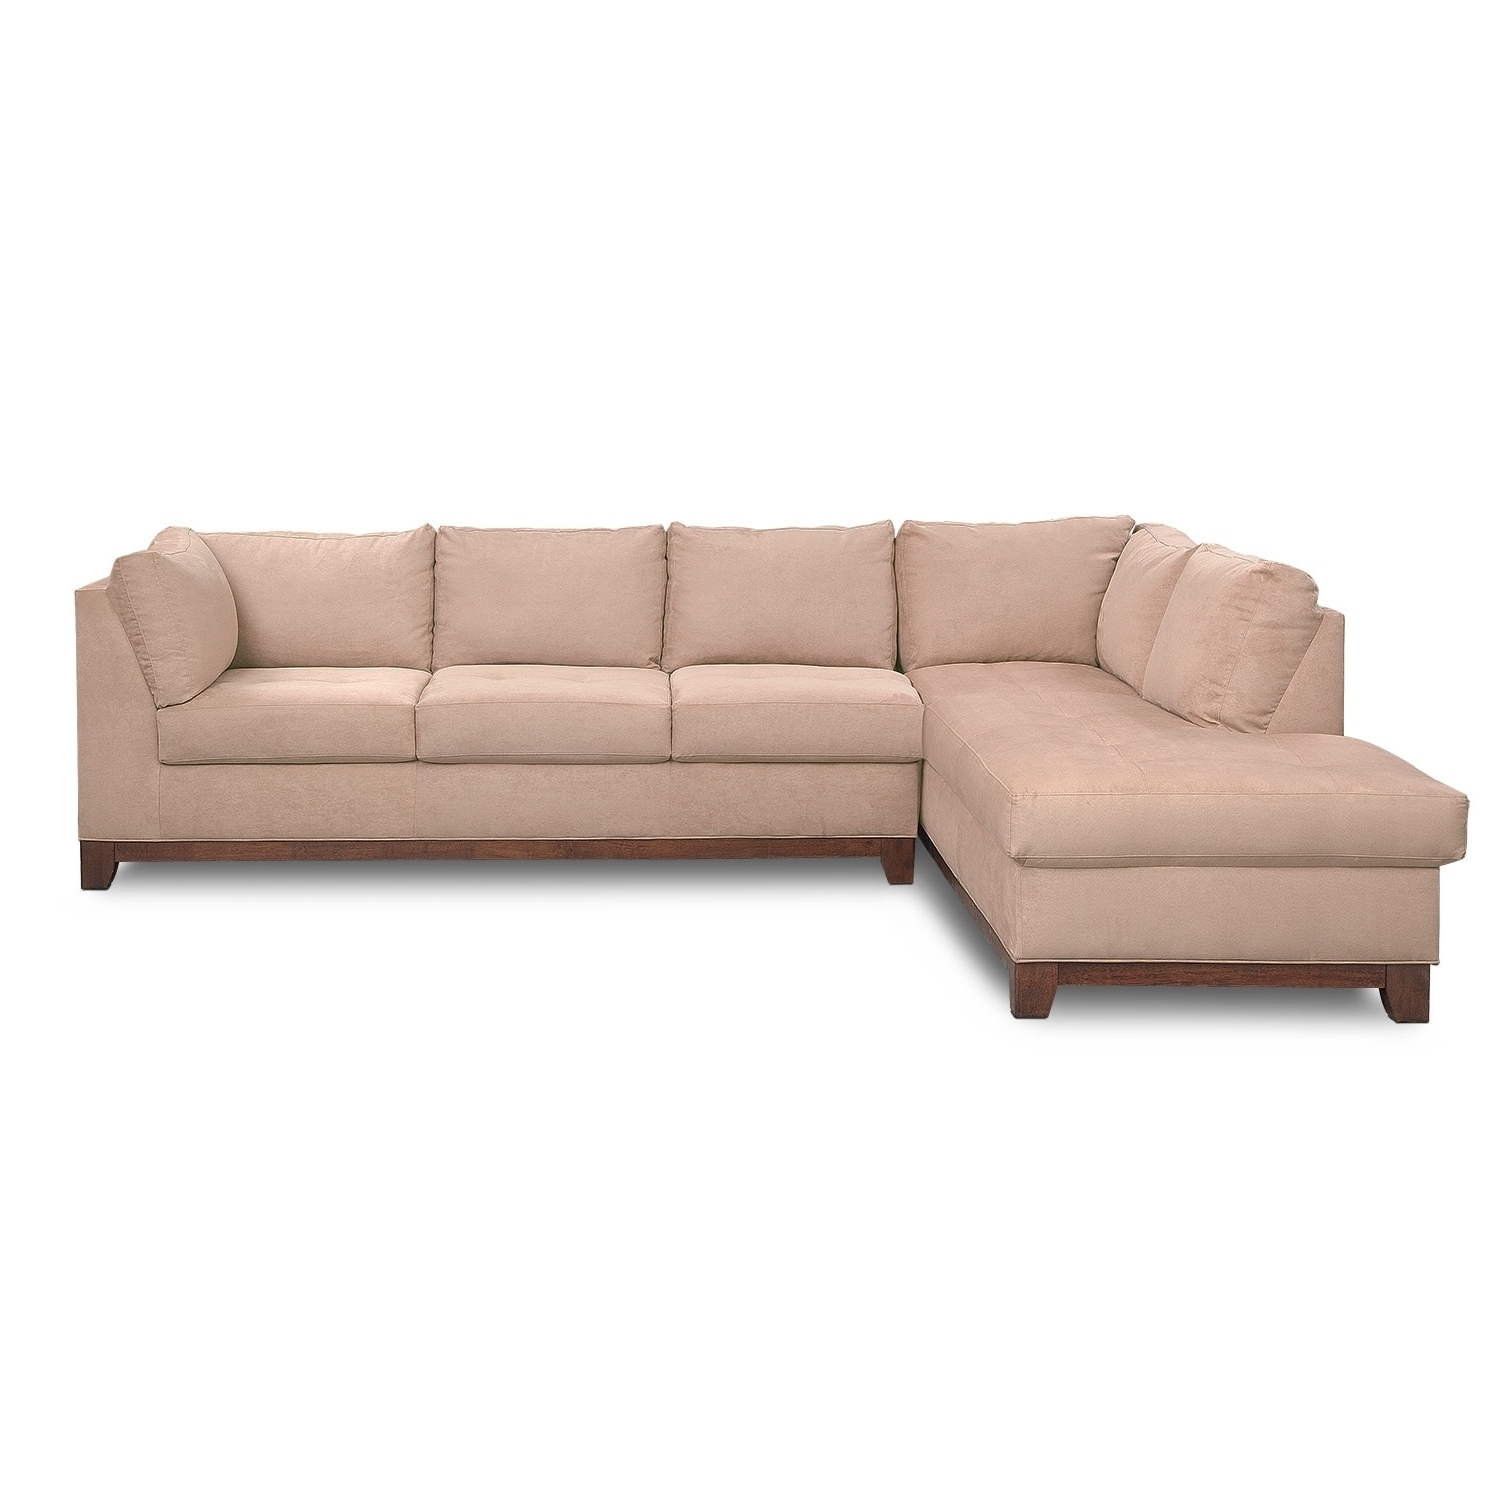 Most Up To Date Left Facing Chaise Sectionals Inside Soho 2 Piece Sectional With Left Facing Chaise – Cobblestone (View 10 of 15)